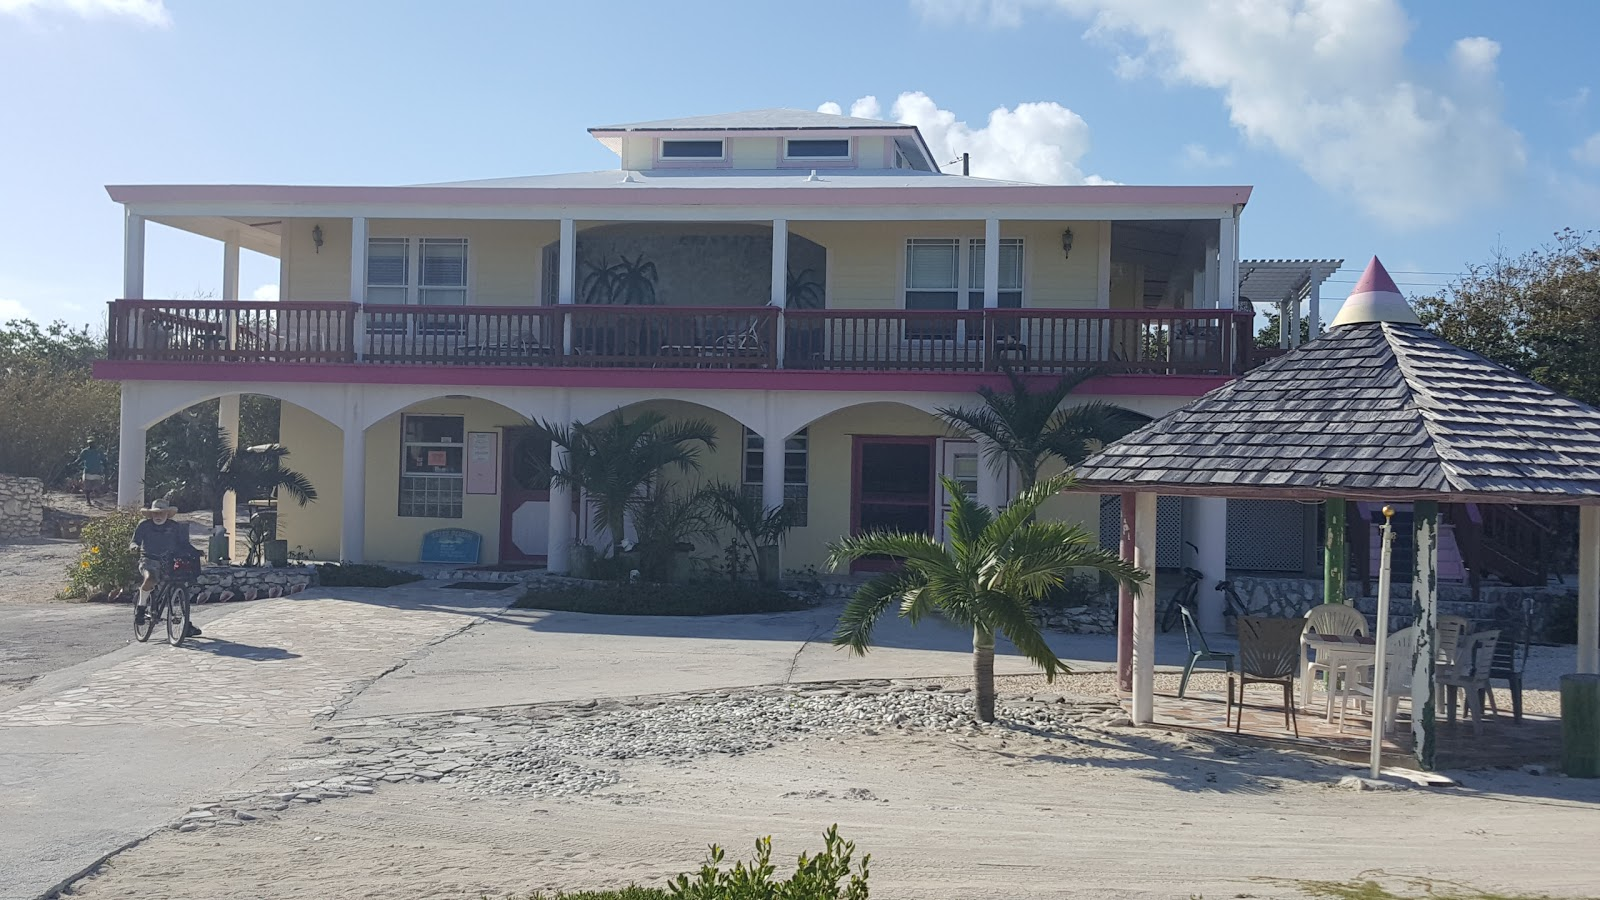 Staniel cay Vacation Home Rentals By Owner, Staniel cay